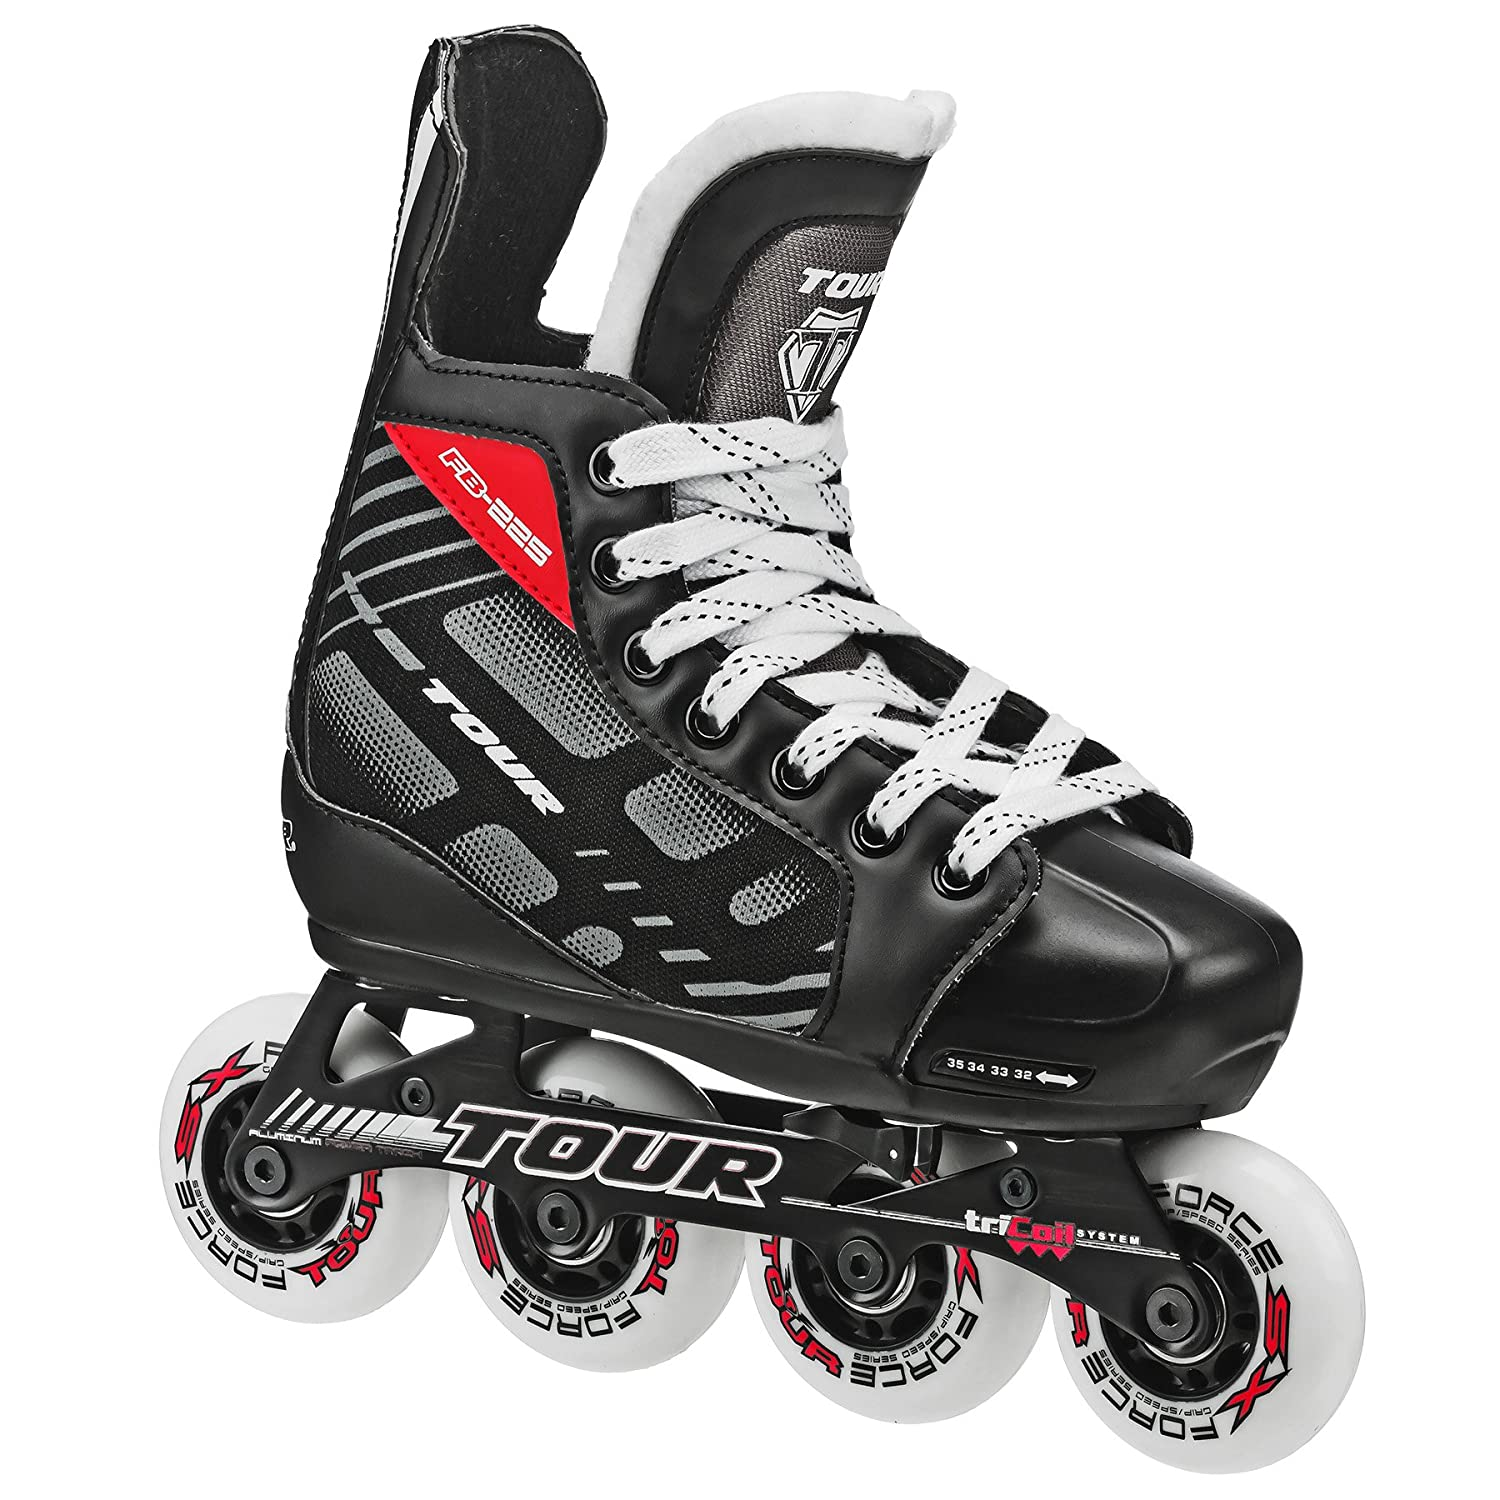 Tour Hockey 38ty-m Fb-225réglable Inline Hockey Skate (Taille 1–4) Roller Derby